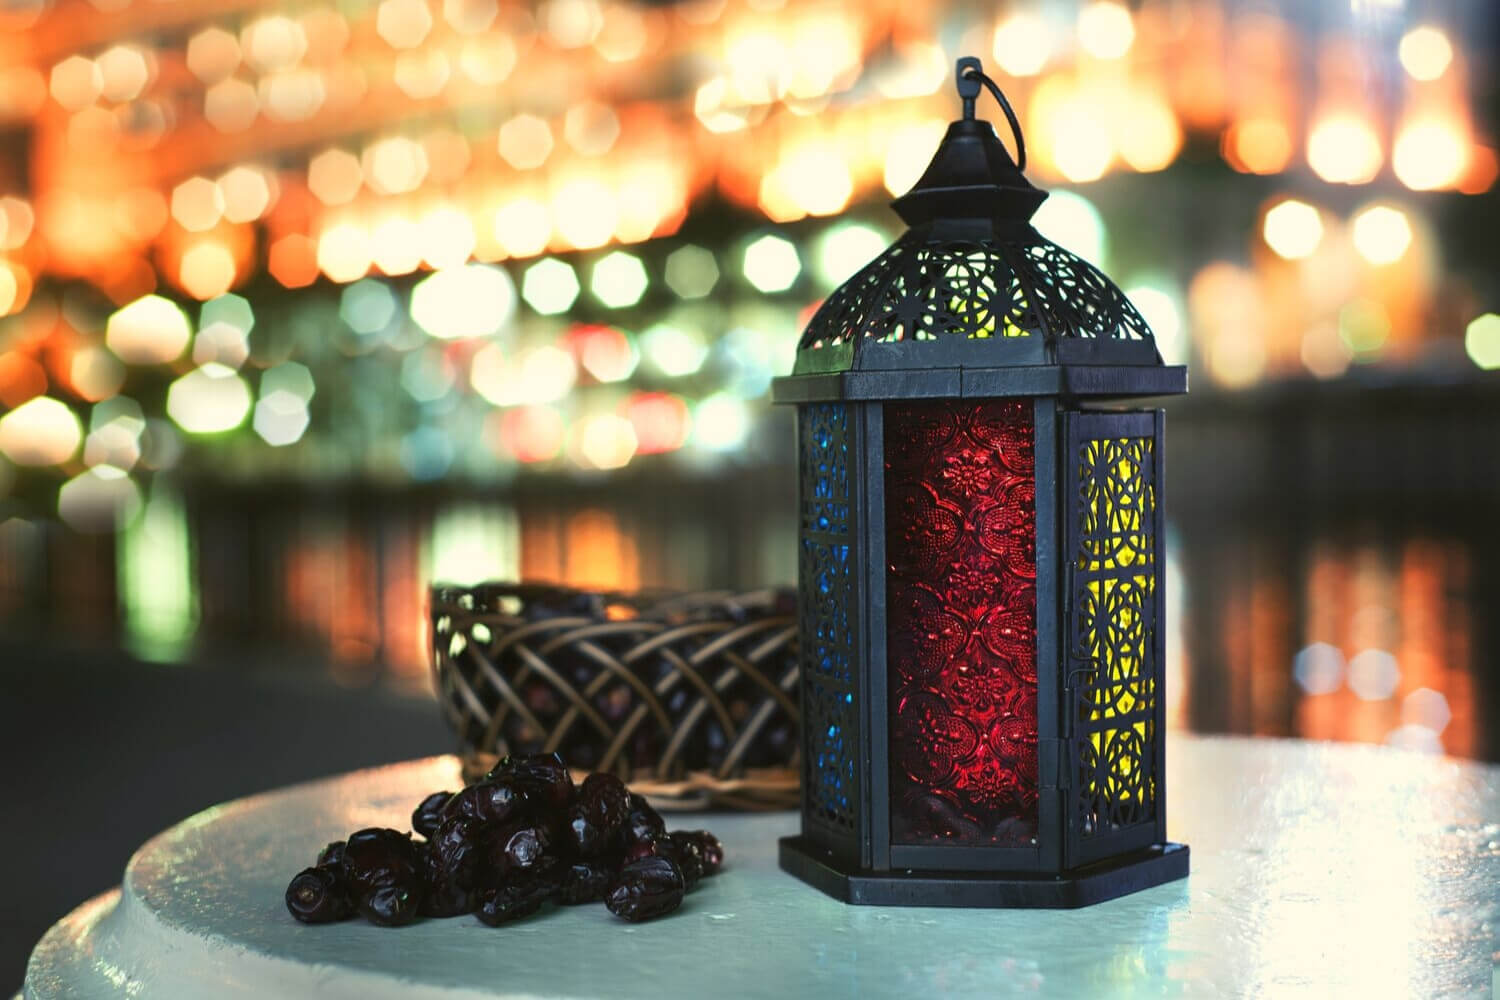 Ramadan celebrations in Dubai